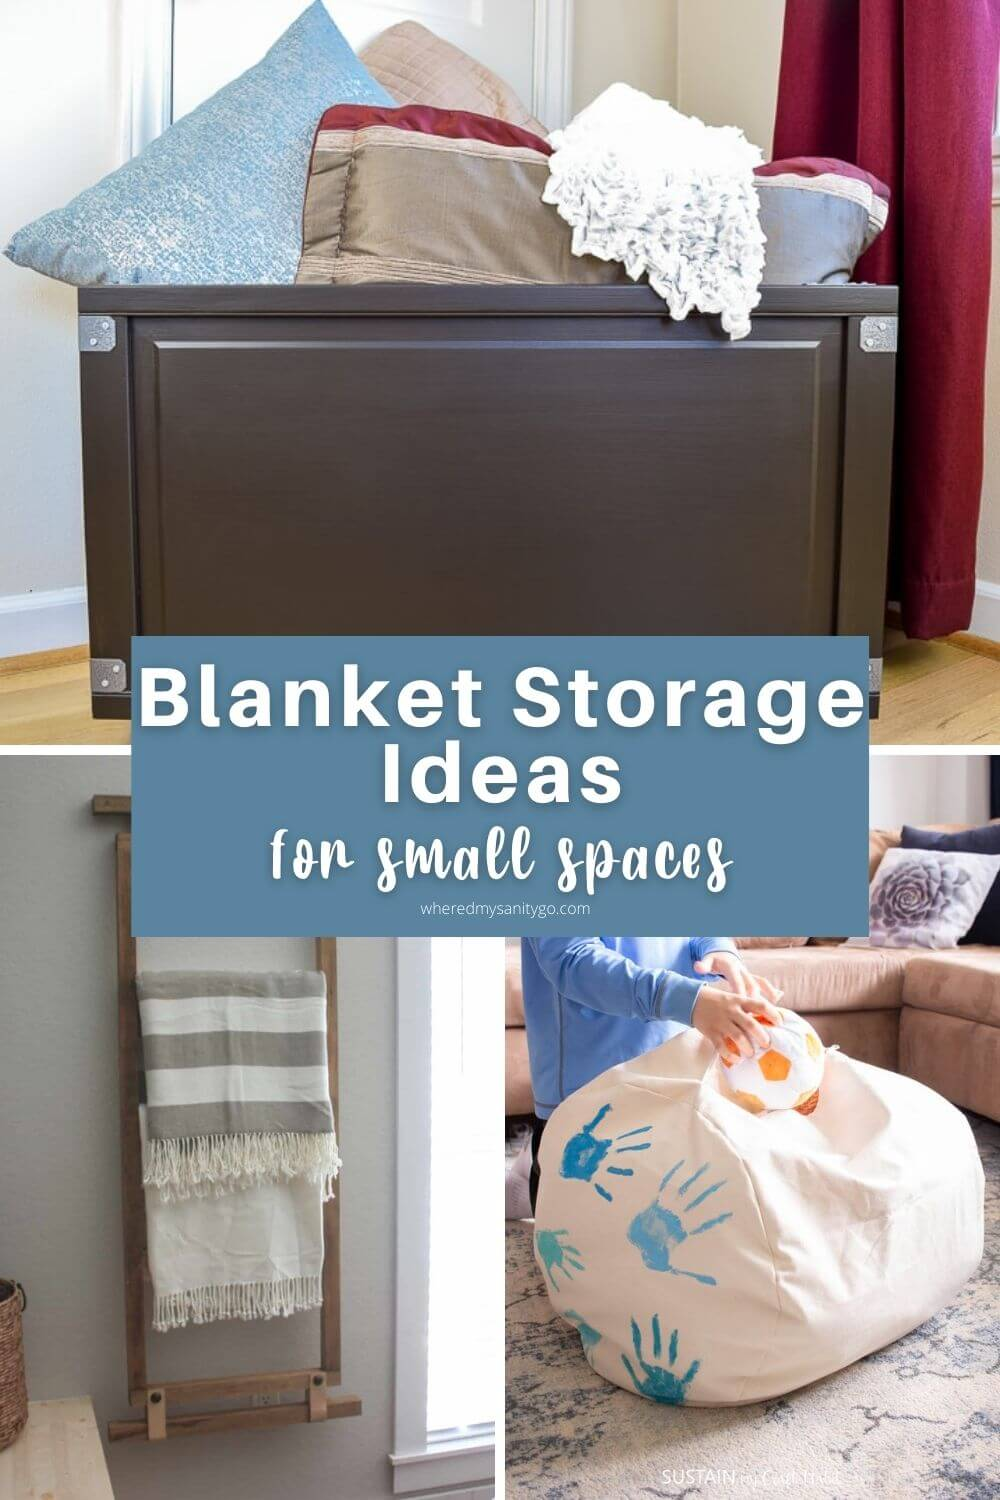 Blanket Storage Ideas for Small Spaces